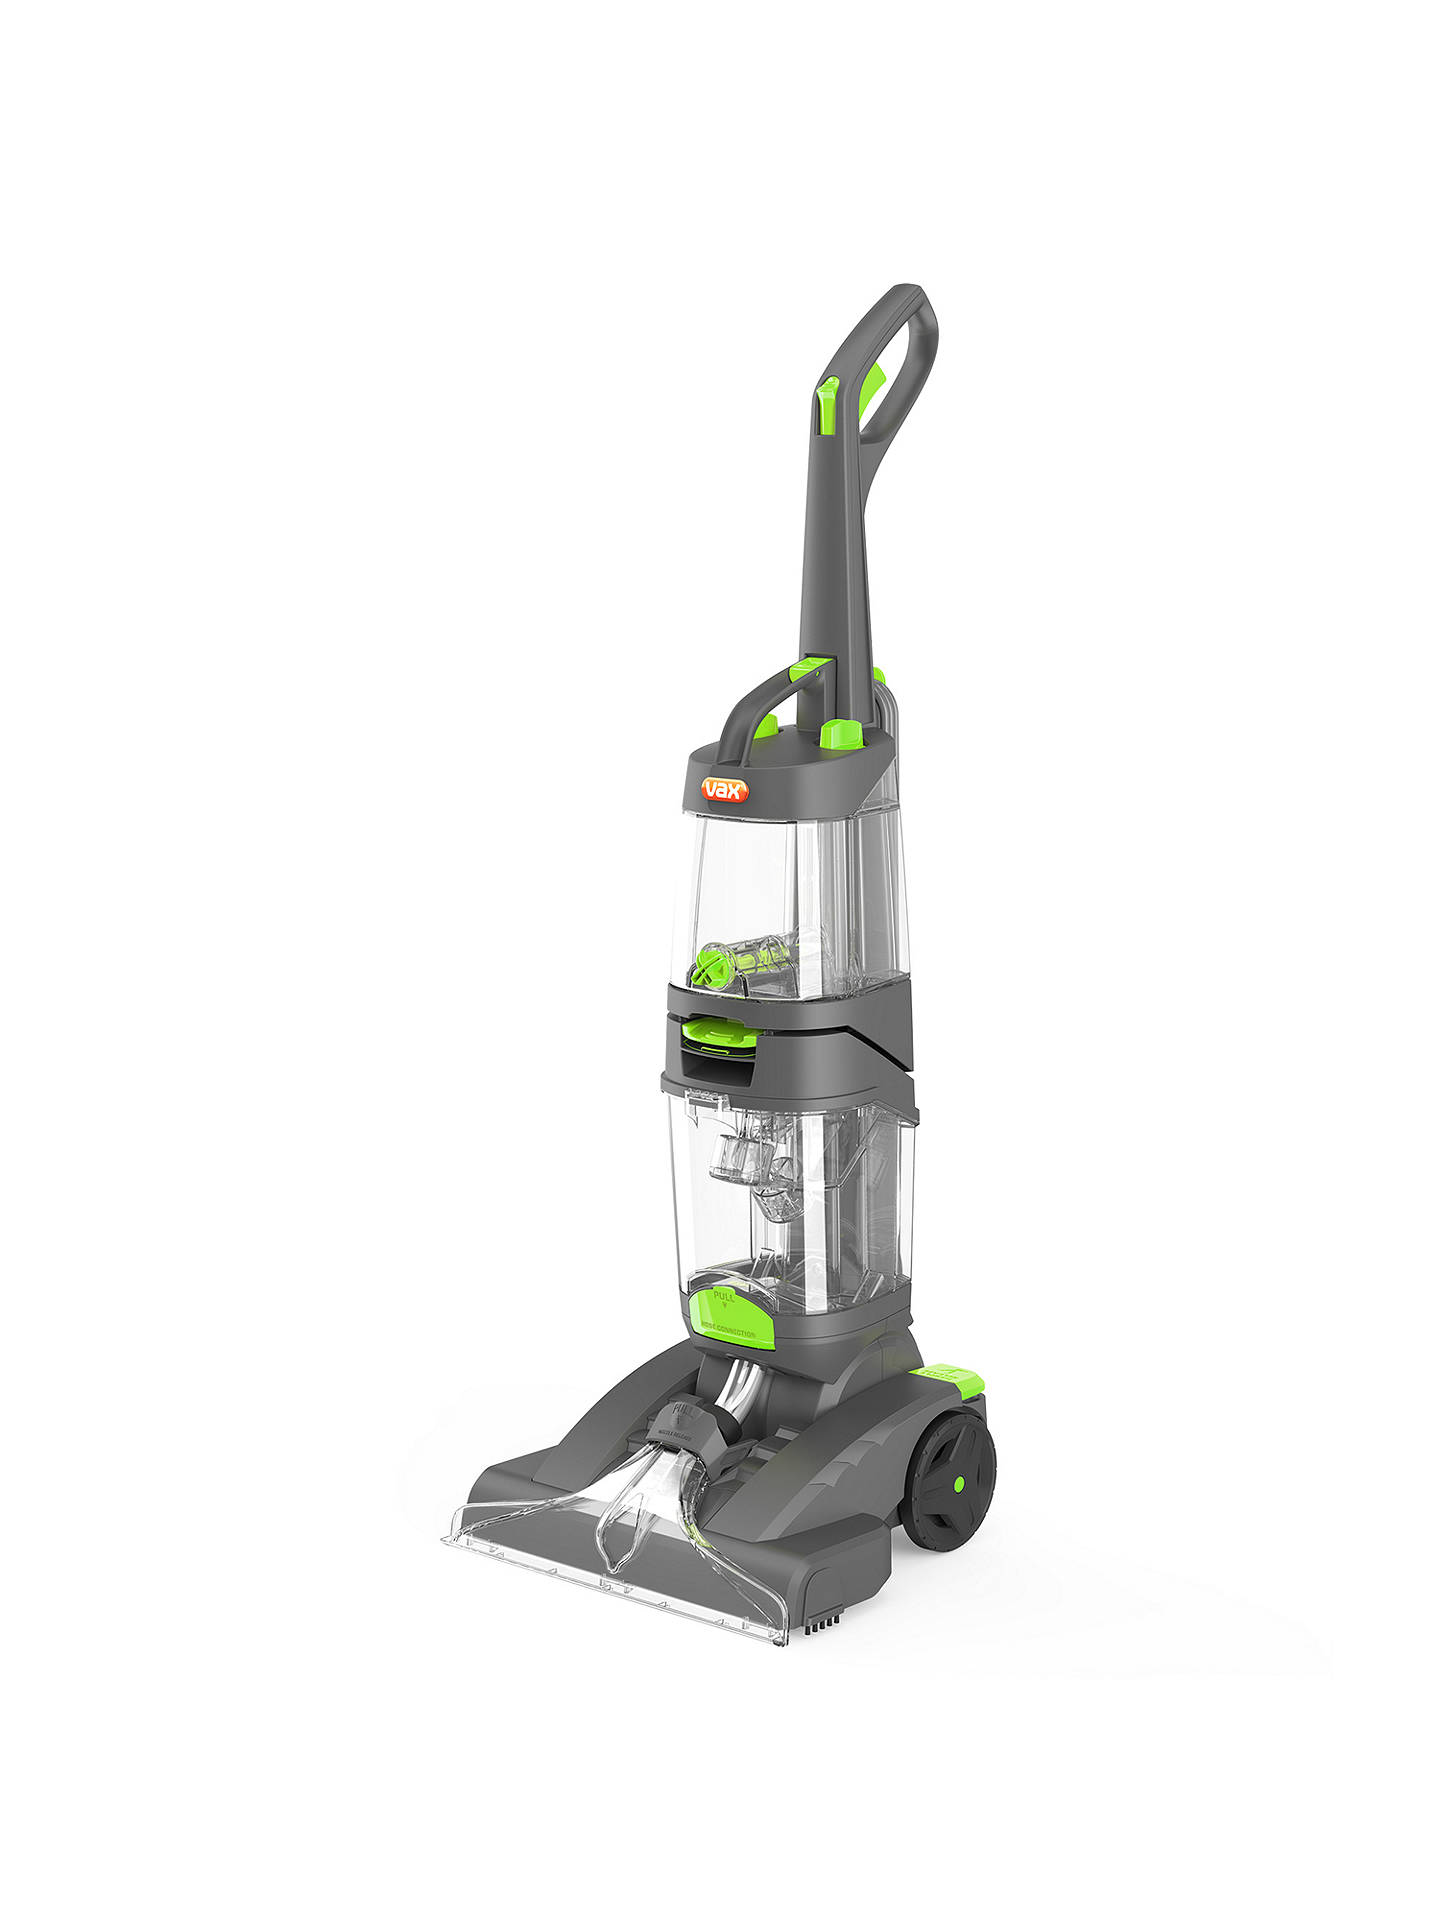 Vax All Terrain Carpet Cleaner User Guide Carpet Vidalondon